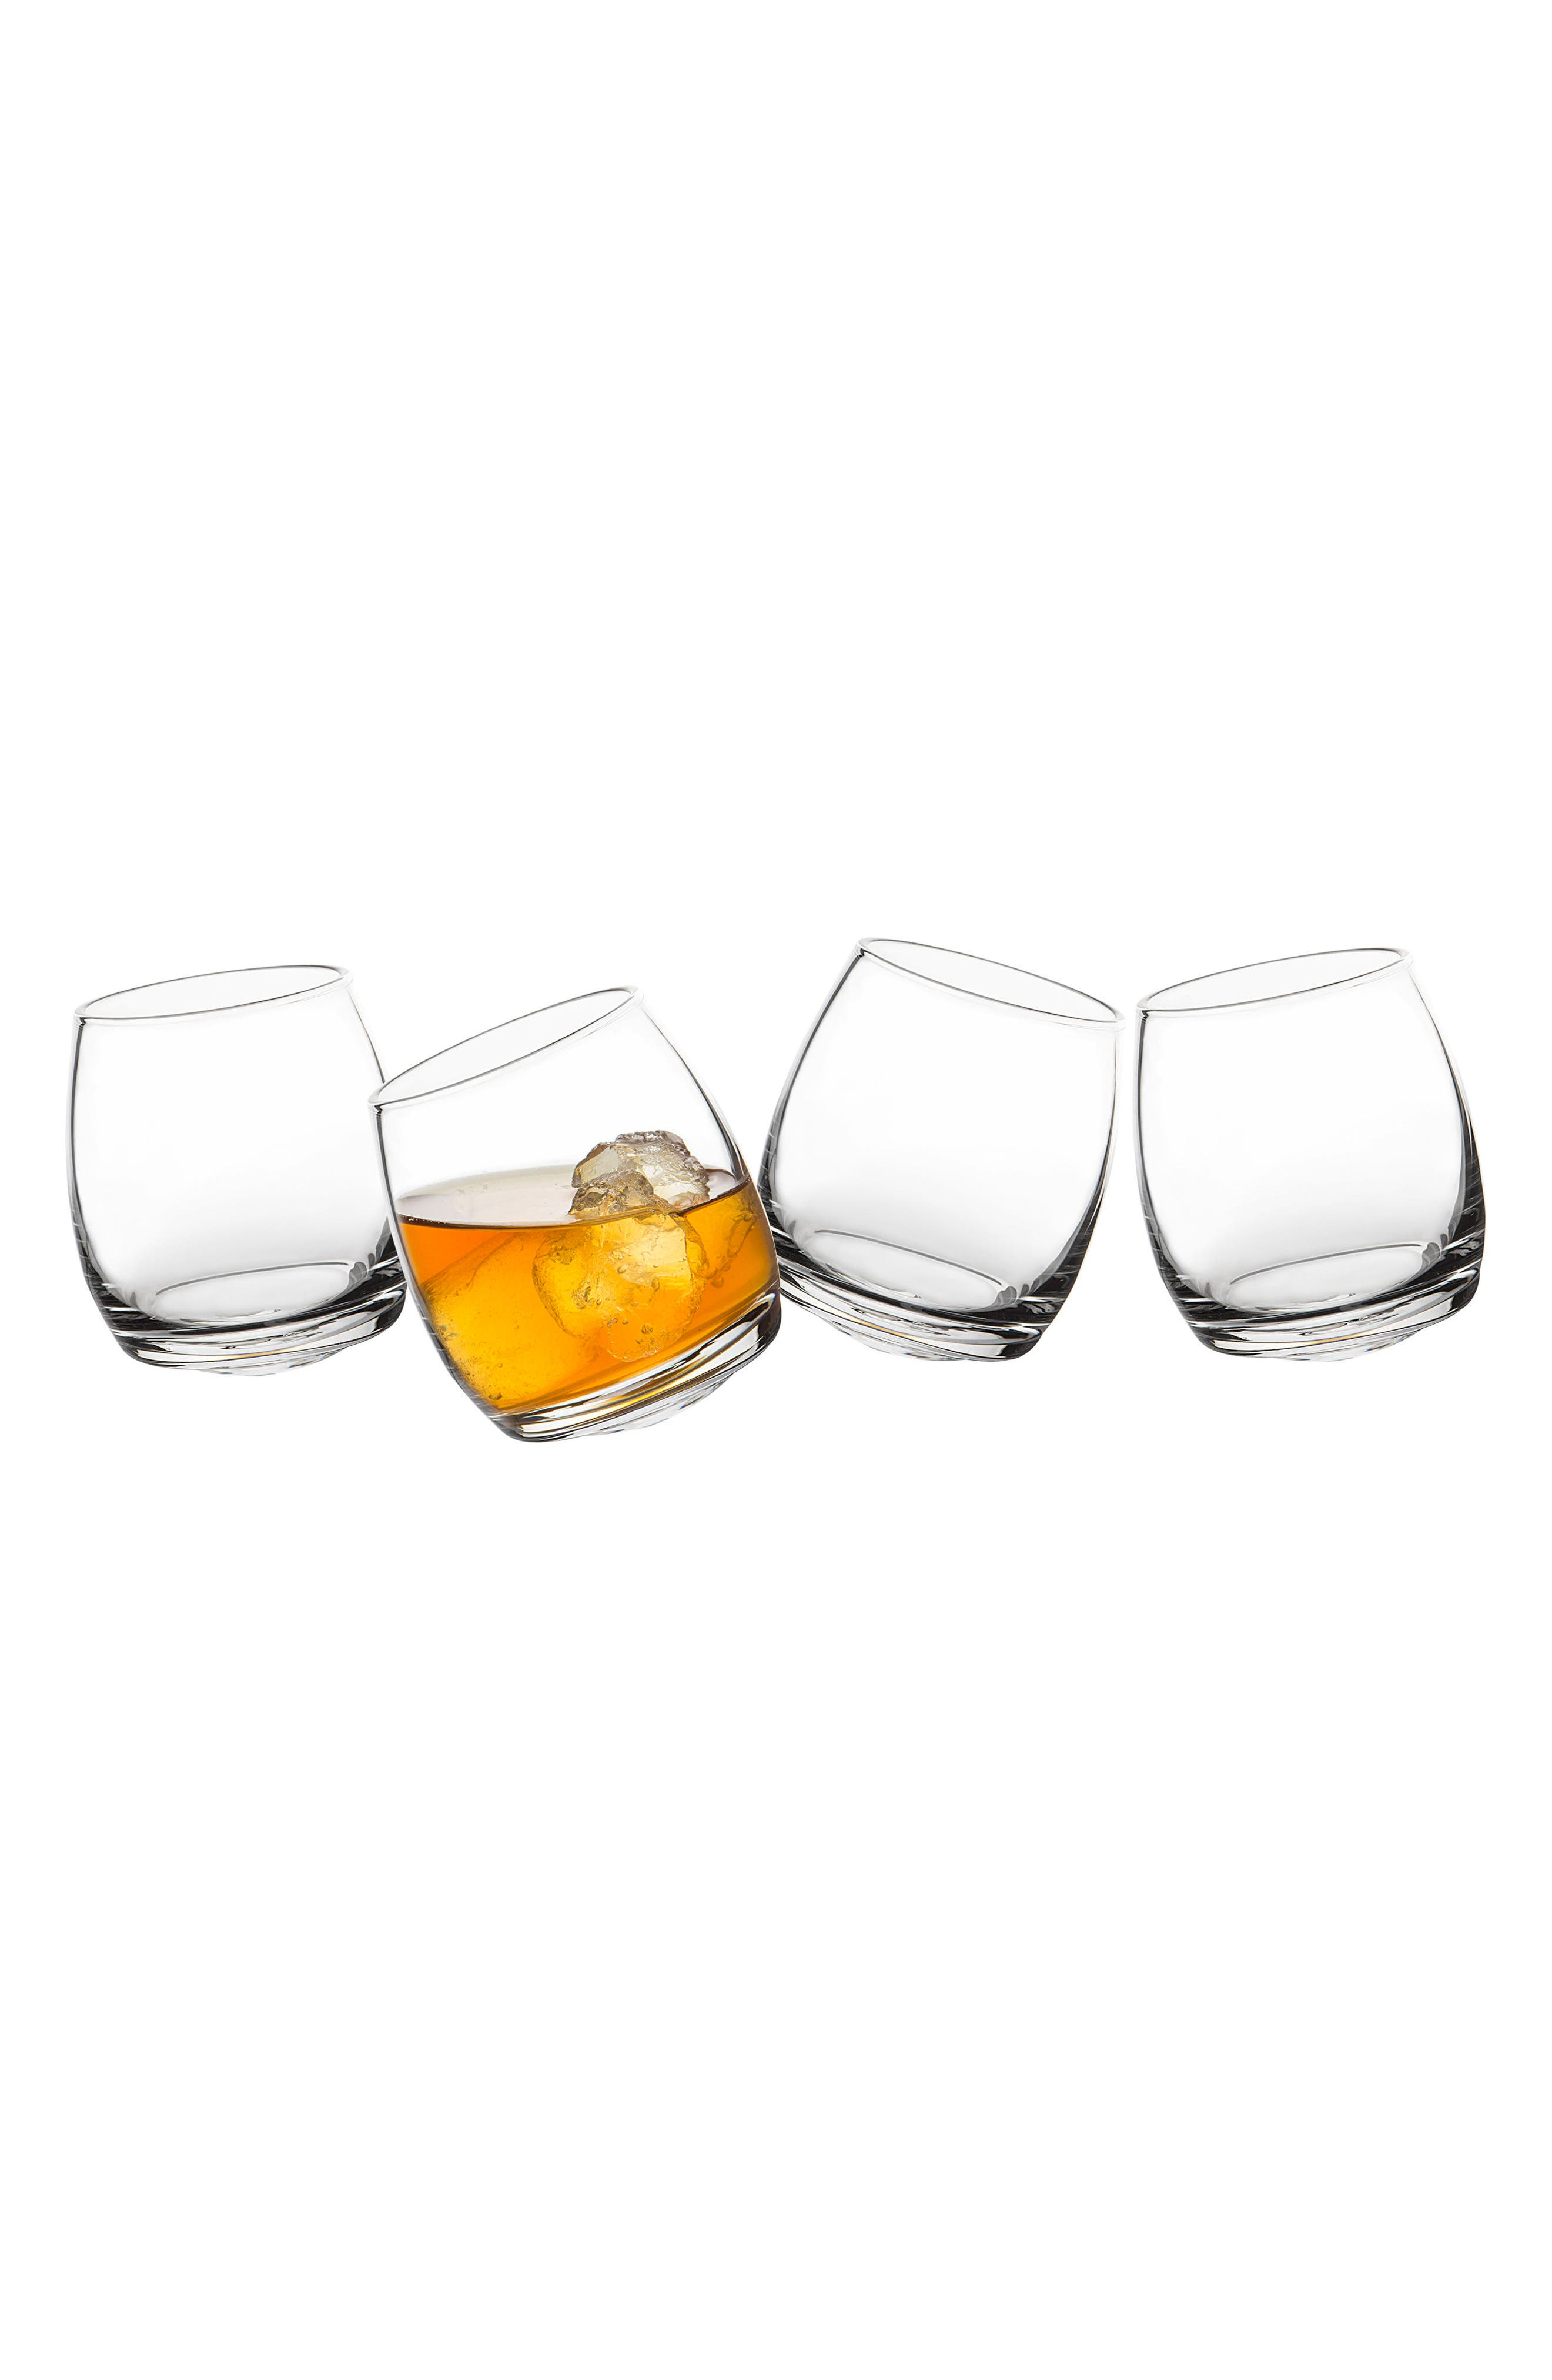 Monogram Tipsy Set of 4 Double Old Fashioned Glasses,                         Main,                         color, 100